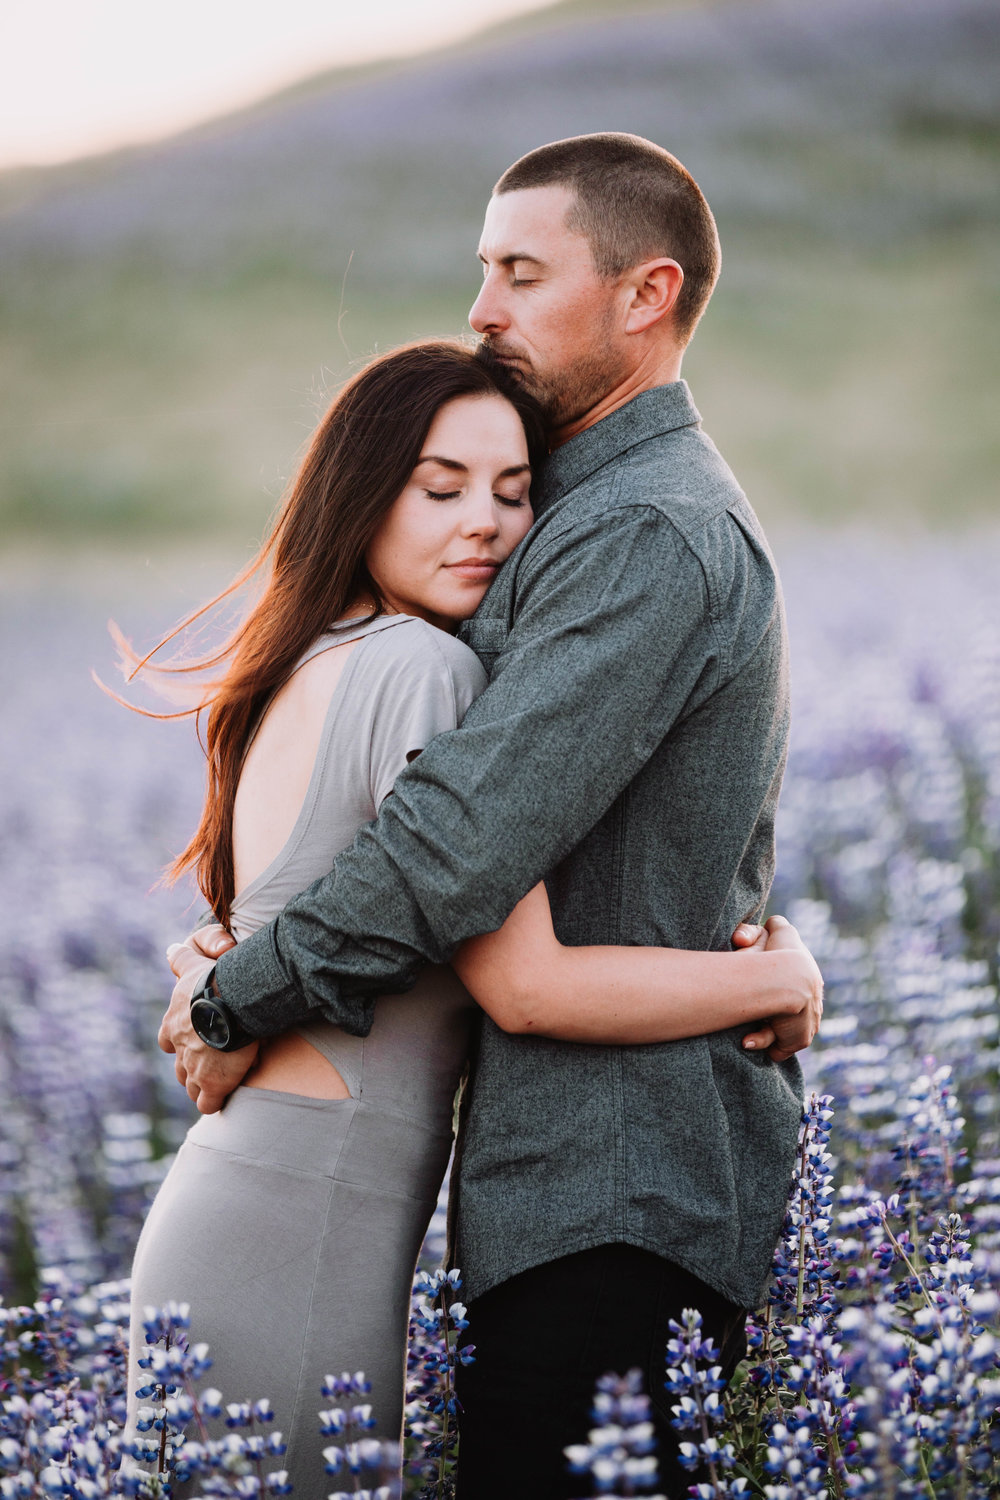 EngagementAllie + Matt - California Super-bloom hillsides that remind you of June in Iceland, where the Lupines grow fast and wild as far as the eye can see.